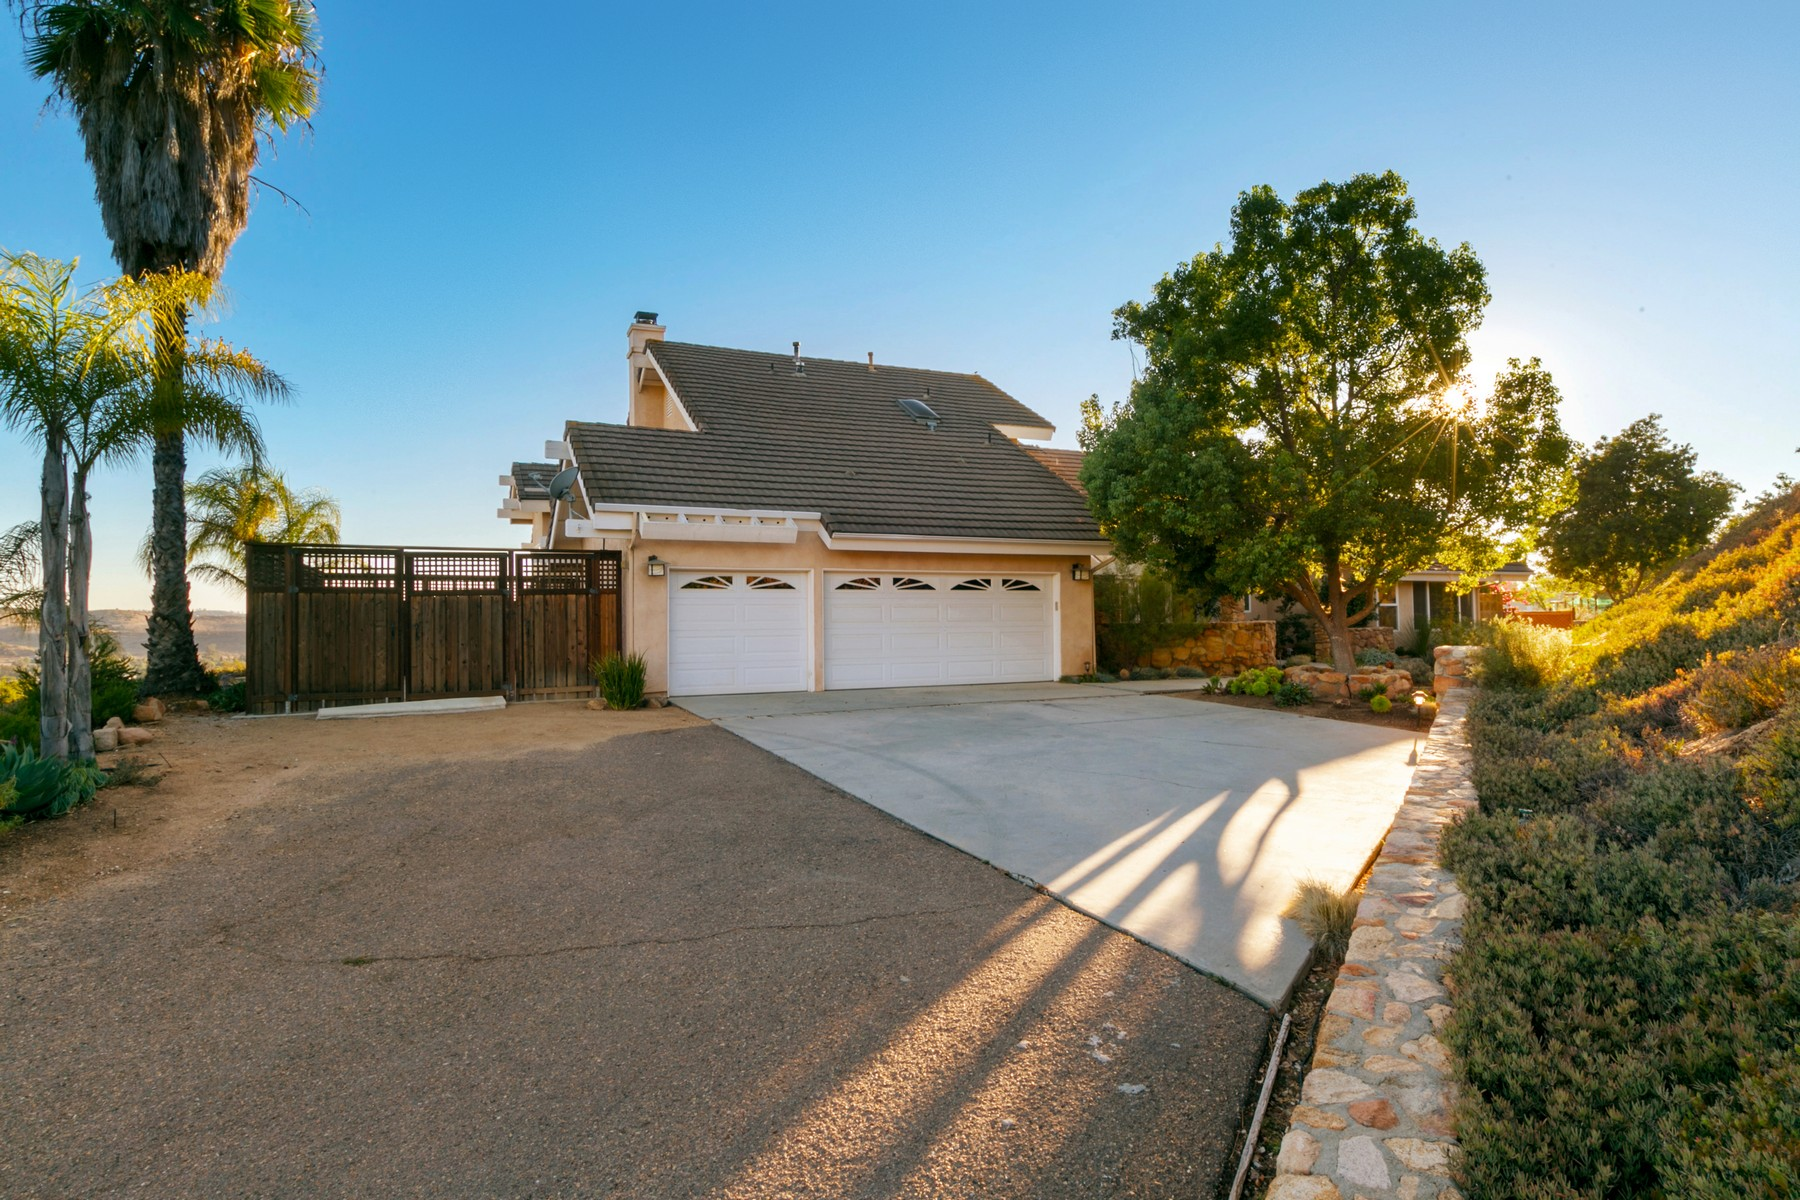 Single Family Homes for Sale at 14648 Sunrise Canyon Rd Poway, California 92064 United States